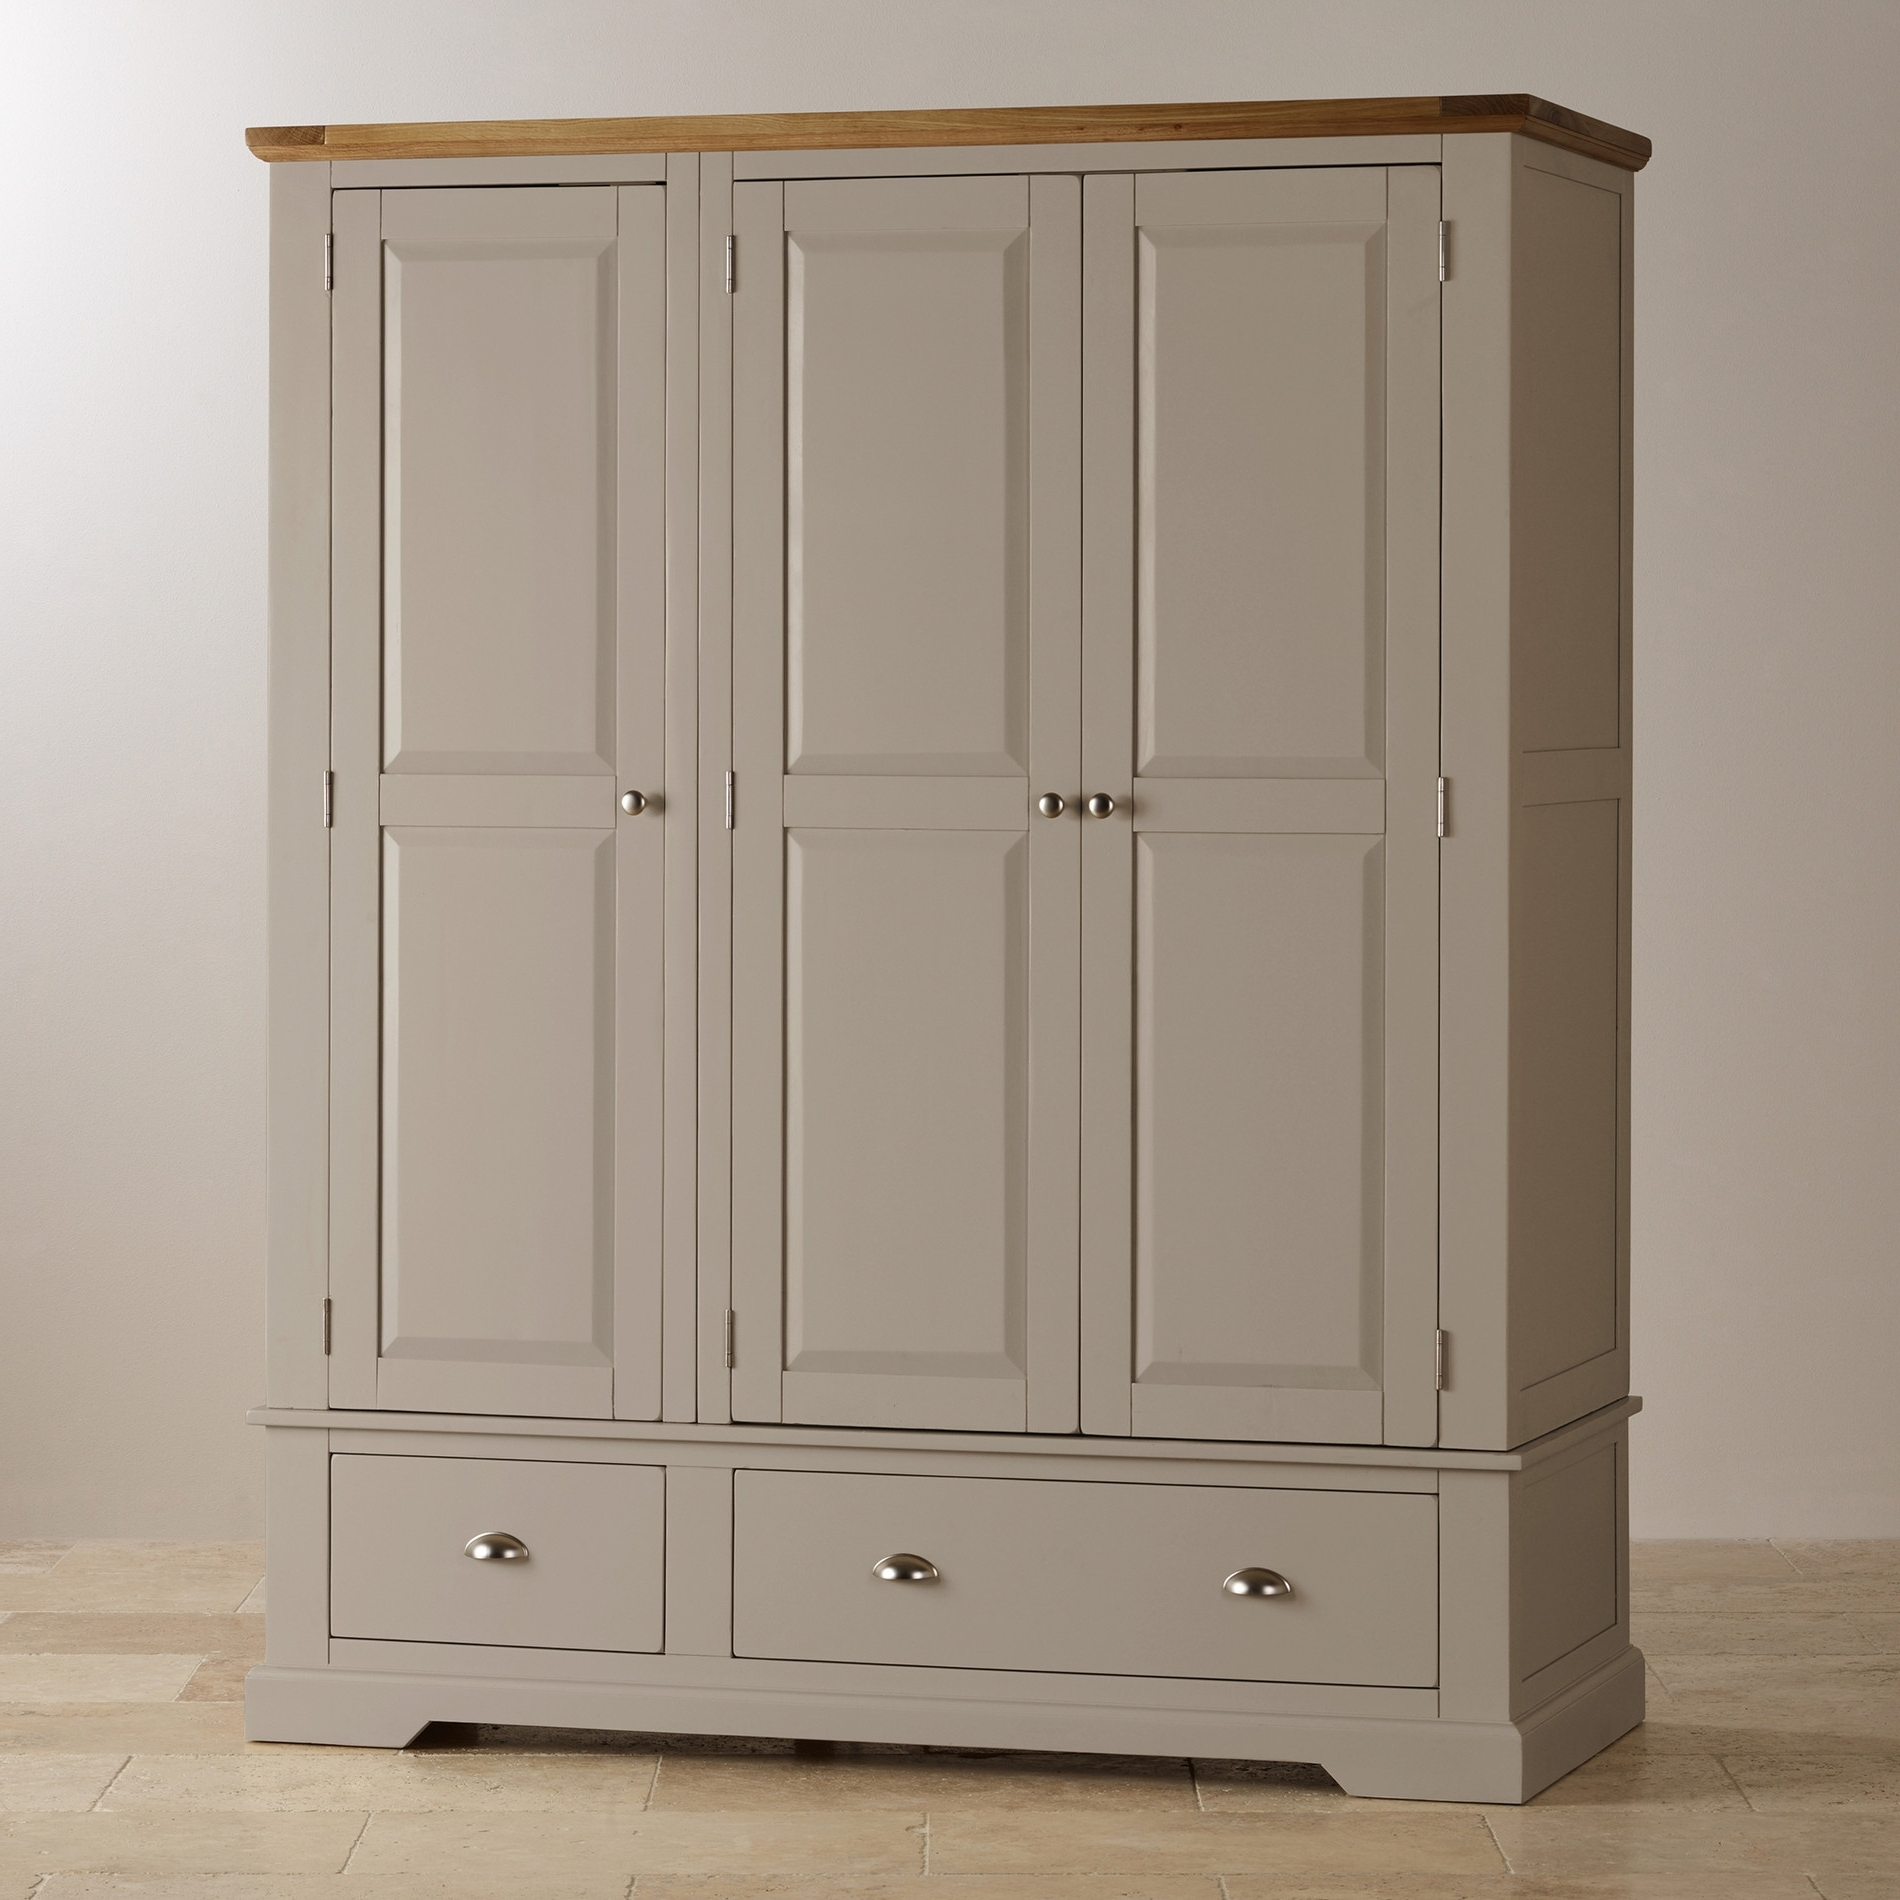 St Ives Grey Painted Triple Wardrobe In Natural Oak In Most Popular Painted Triple Wardrobes (View 14 of 15)